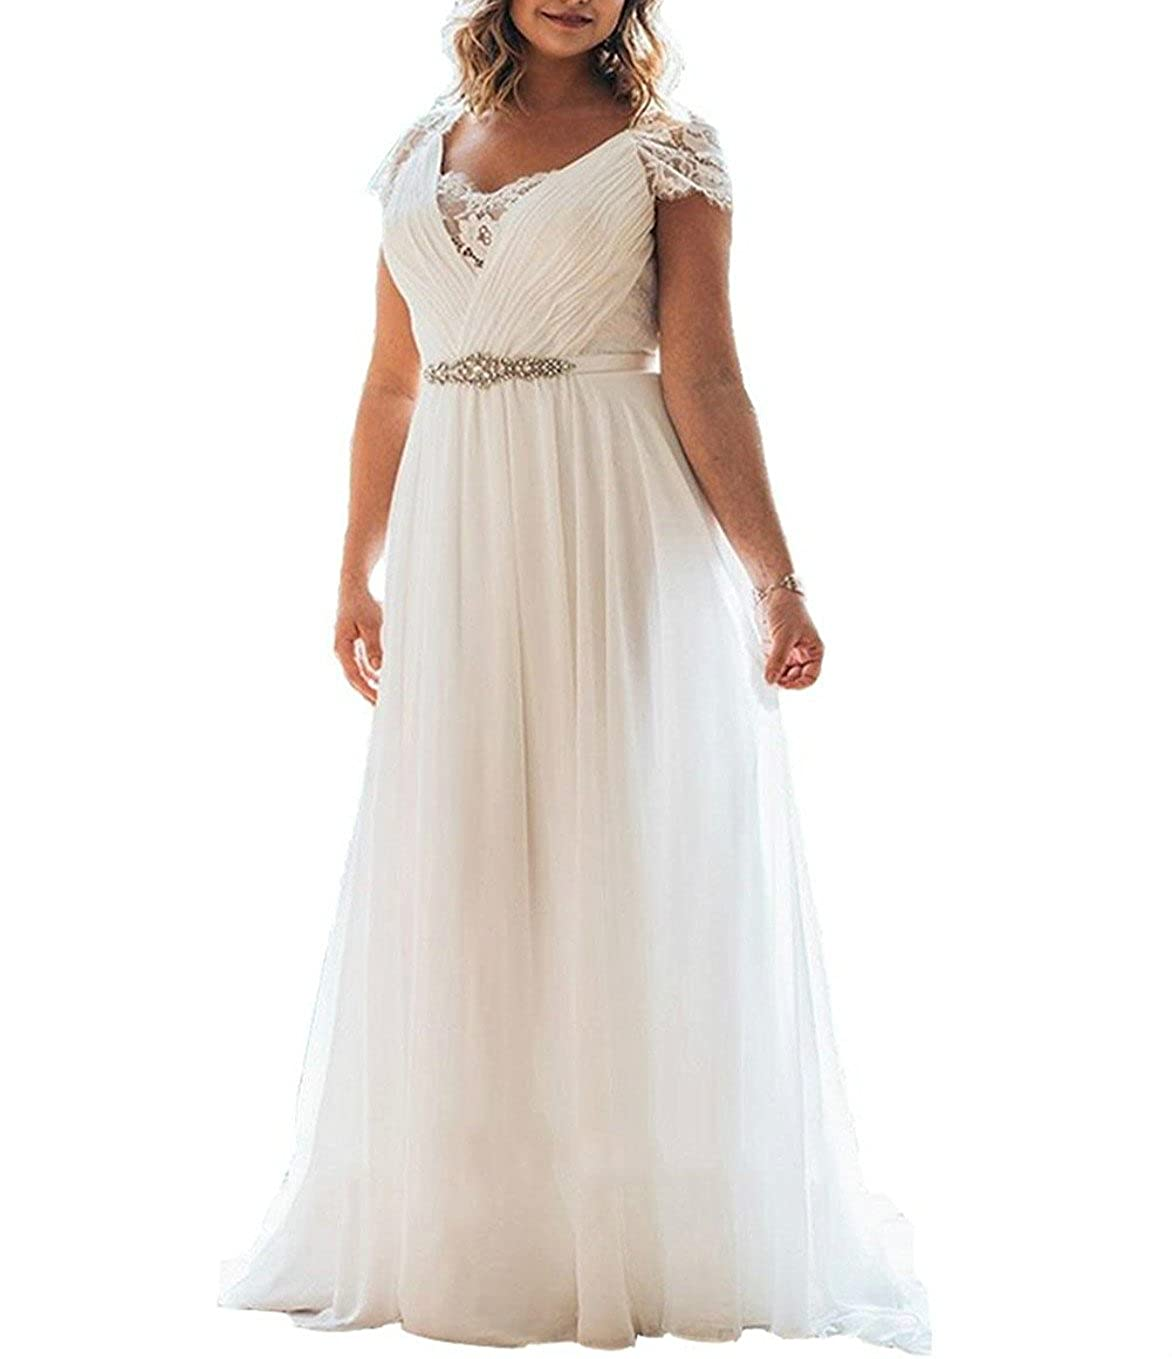 DMDRS Dreamdress Women\'s Chiffon Lace Garden Plus Size Sash Wedding Dresses